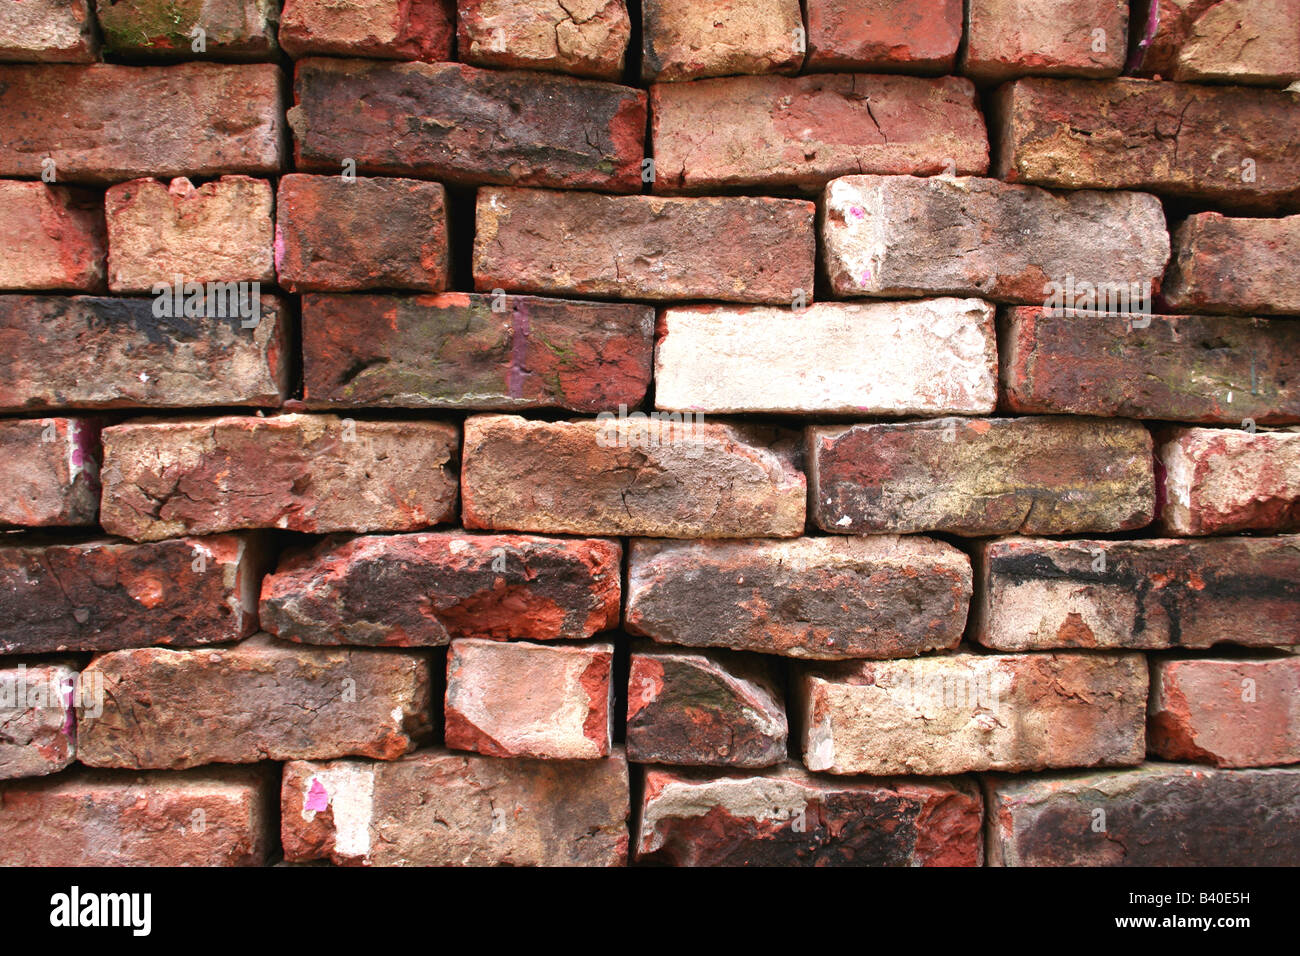 A stack of reclaimed red bricks - Stock Image